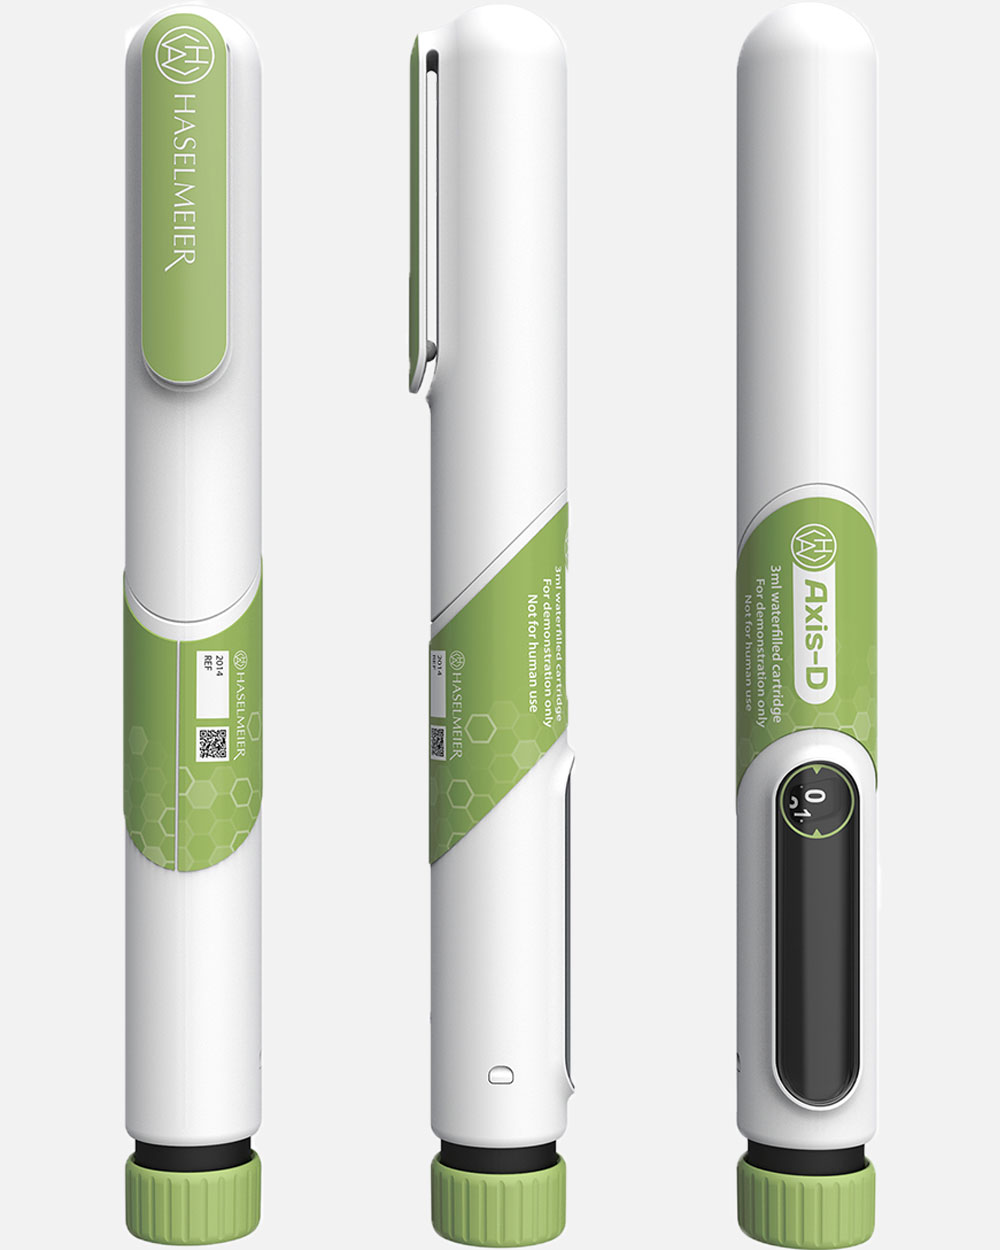 Product view of an insulin injector pen device